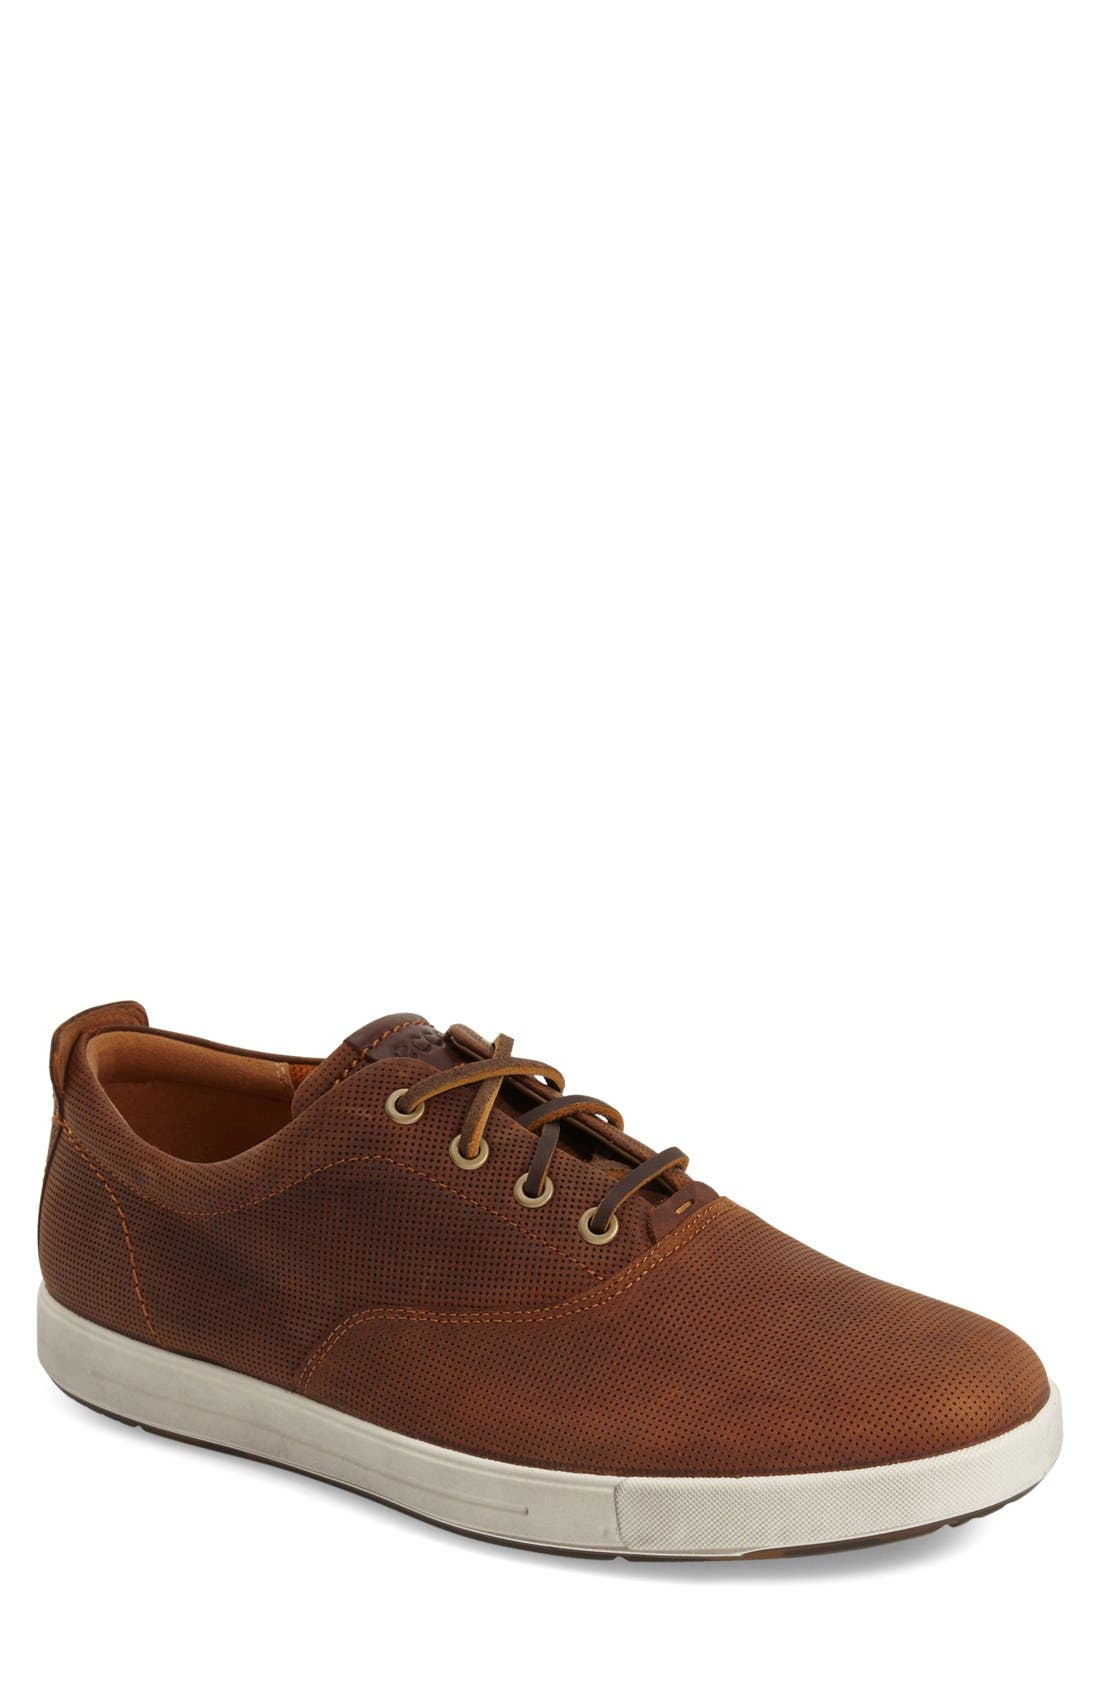 'Eisner' Sneaker,                         Main,                         color, Amber/ Mink Leather